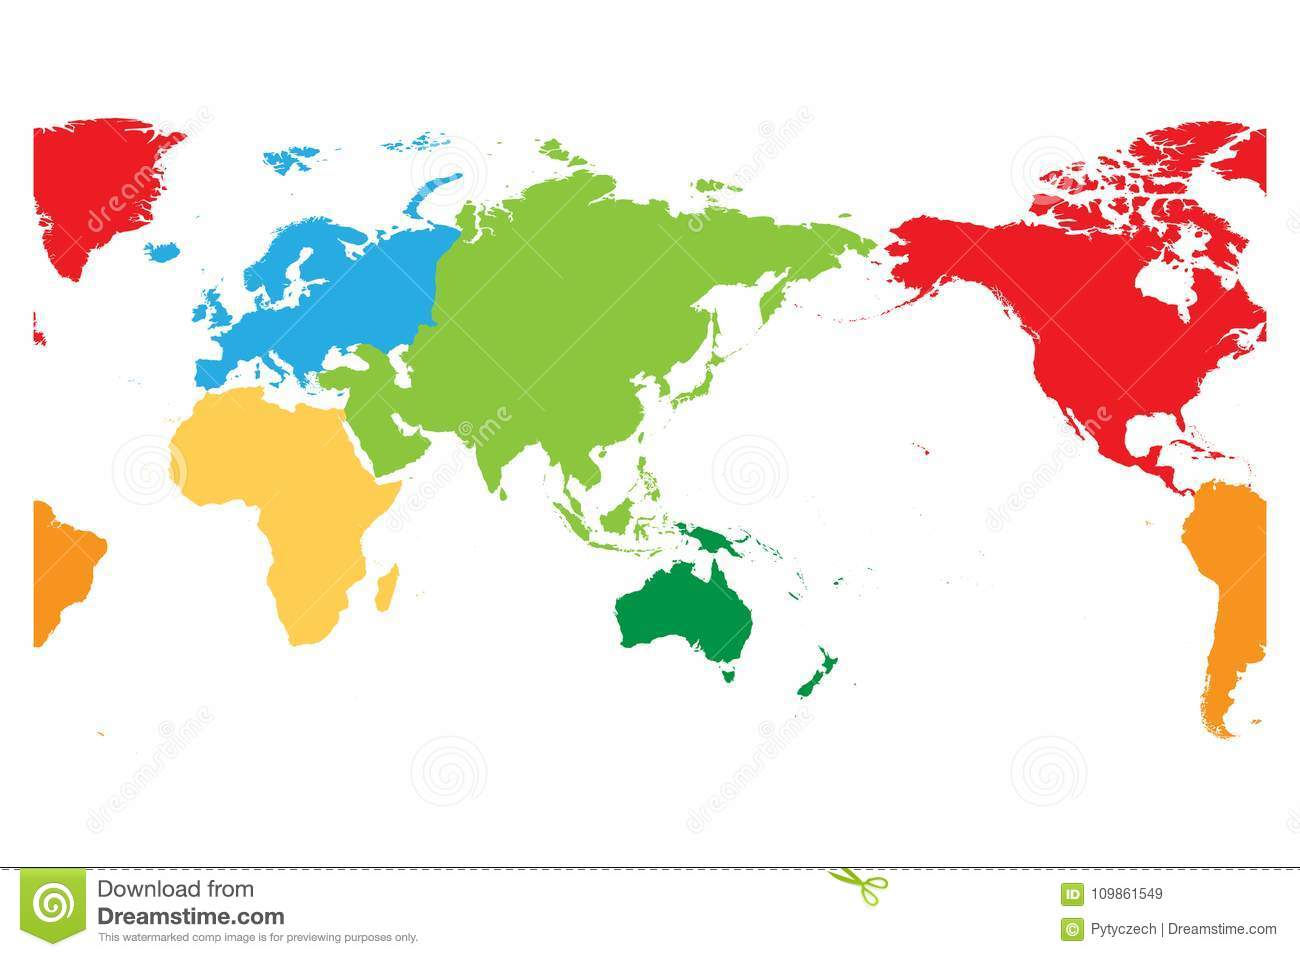 Australia In World Map.World Map Divided Into Six Continents Asia And Australia Centered